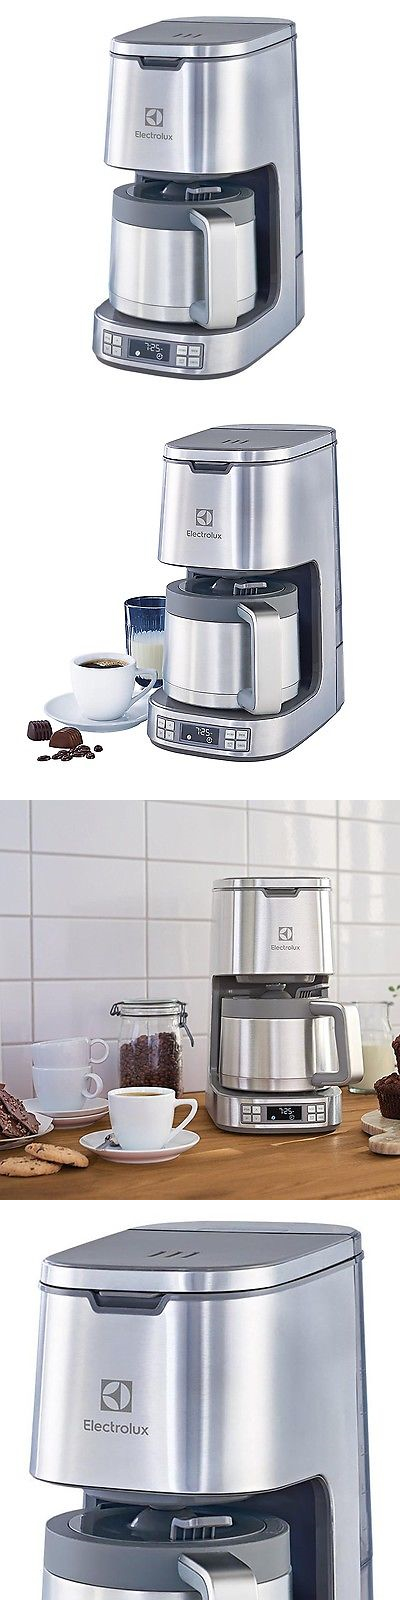 Coffee Makers Automatic 65635 Electrolux Expressionist 10